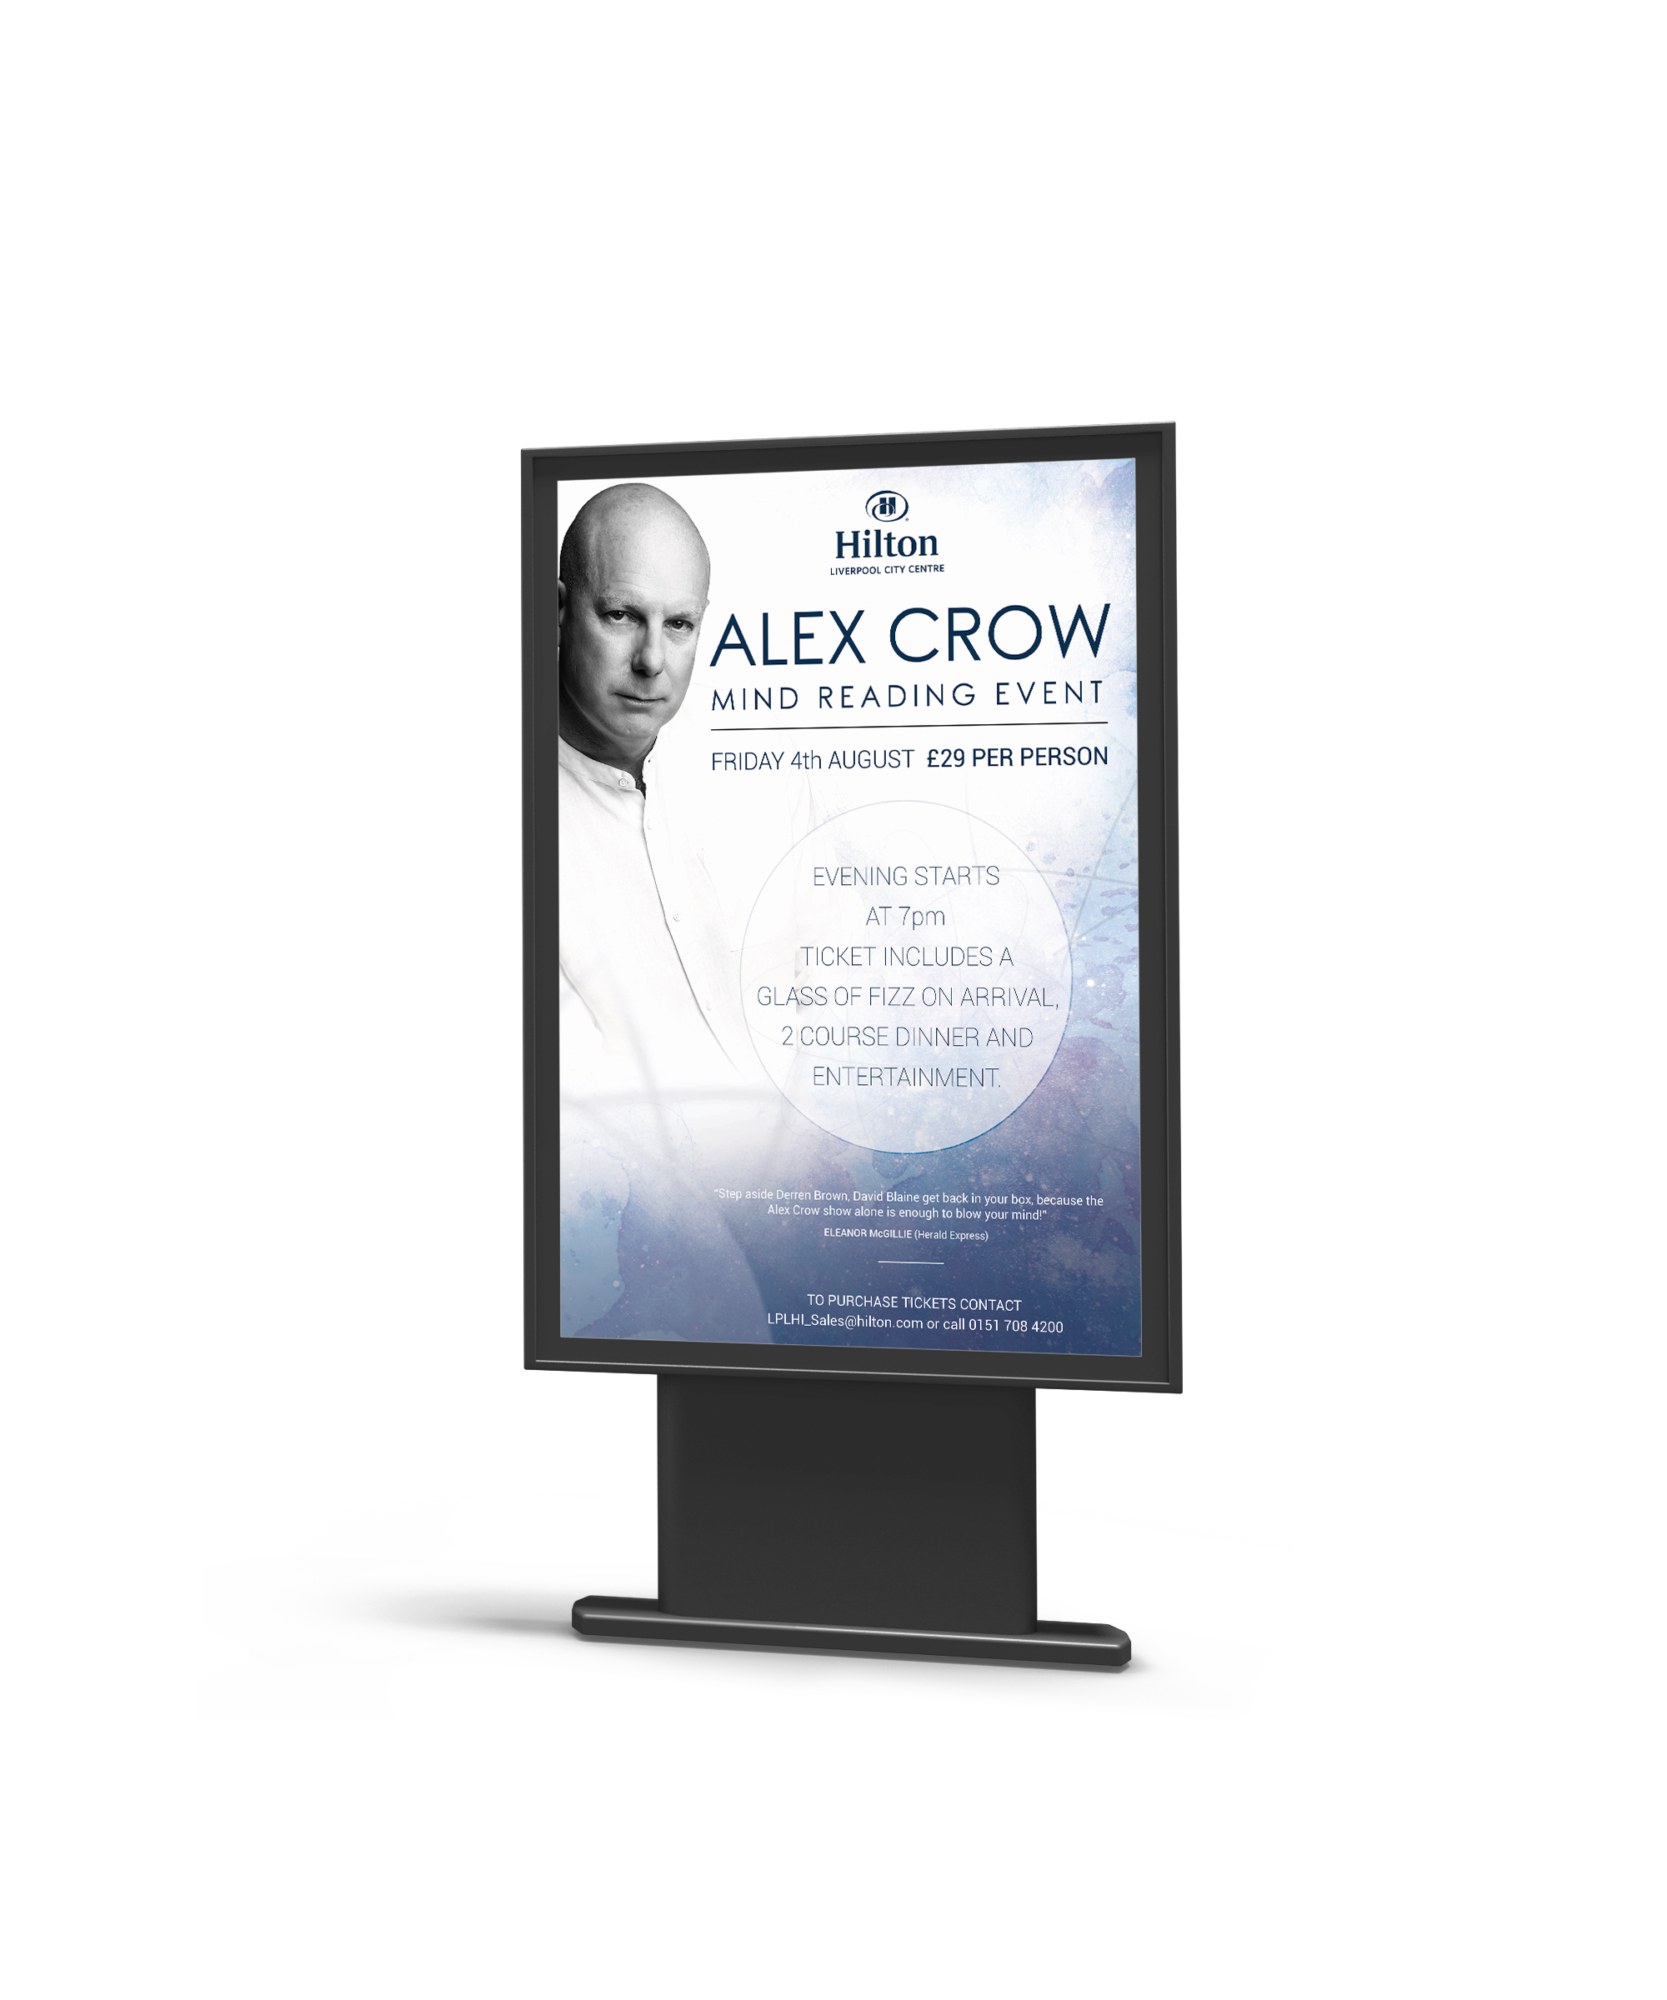 A banner for an event hosted by Hilton, the event is an Alex Crow mind reading event